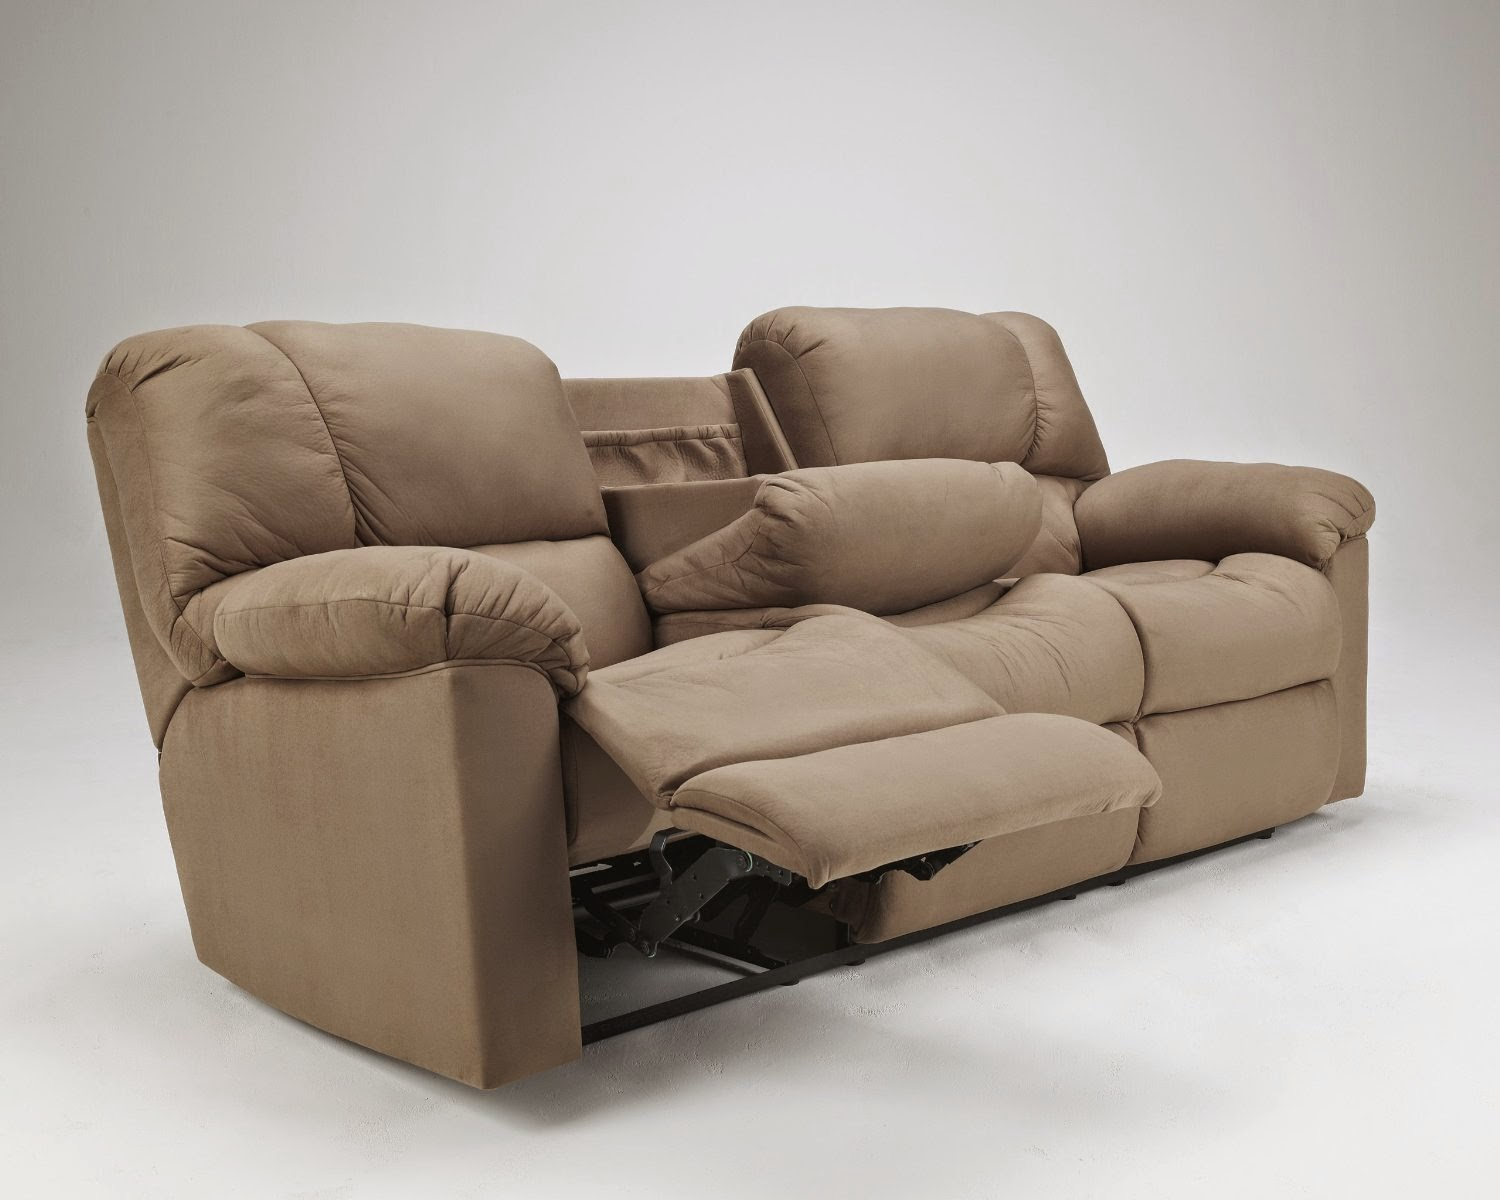 Cheap reclining sofas sale eli cocoa reclining sofa review for Furniture sofa sale